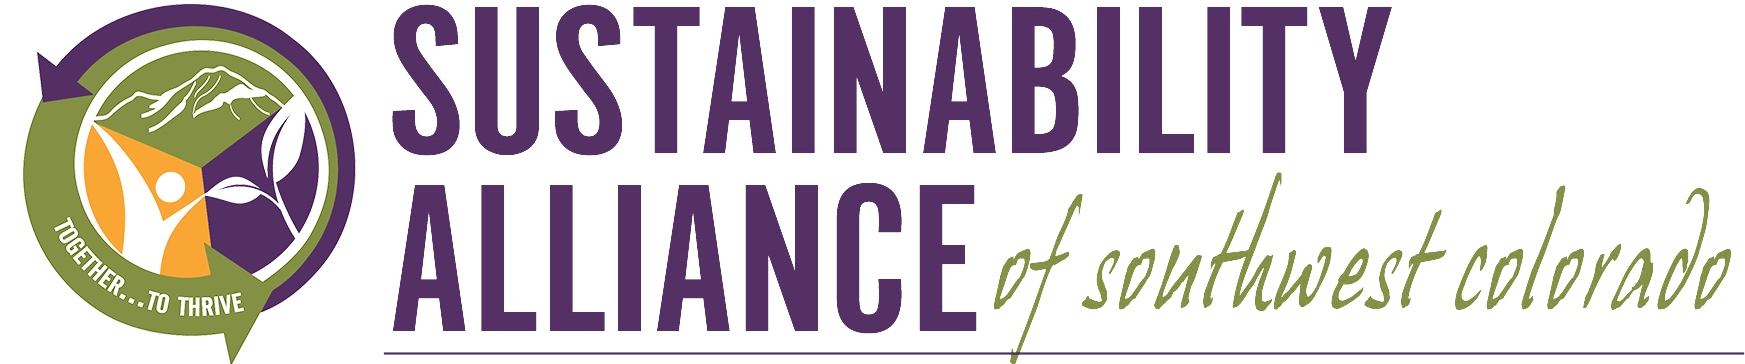 Sustainability Alliance of Southwest Colorado